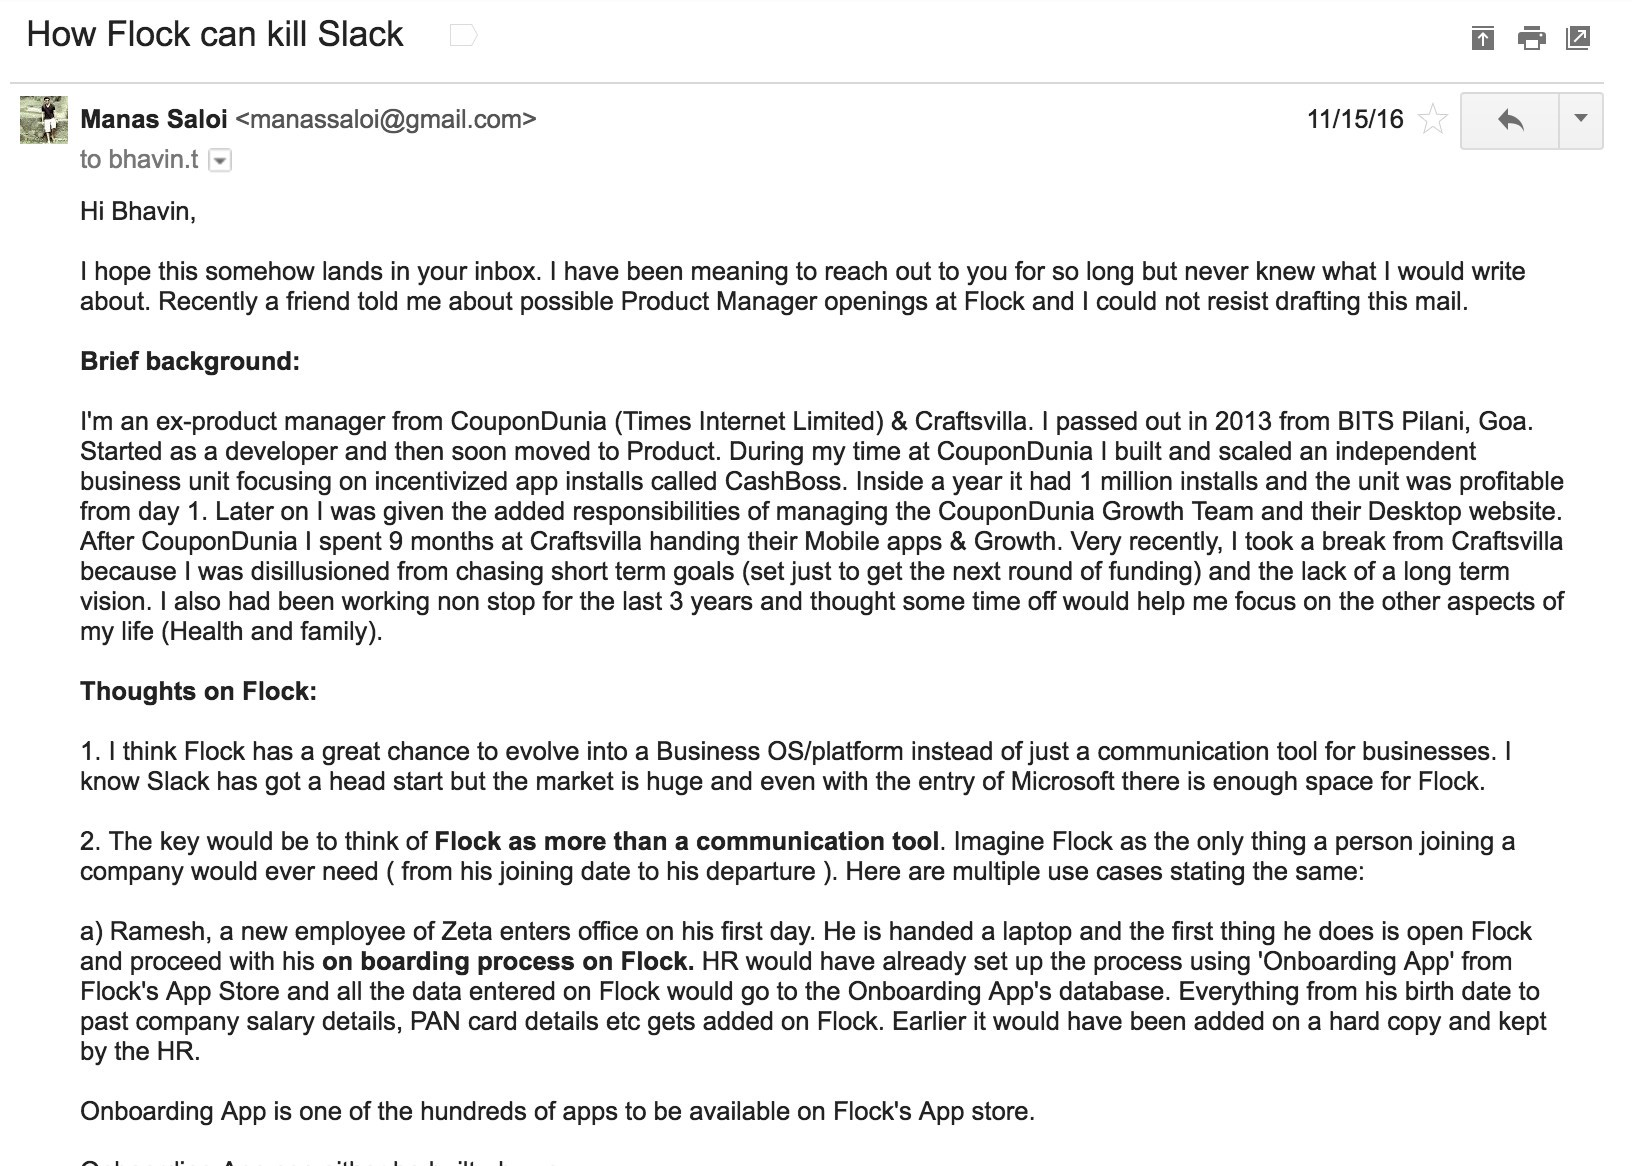 first part of the mail/pitch